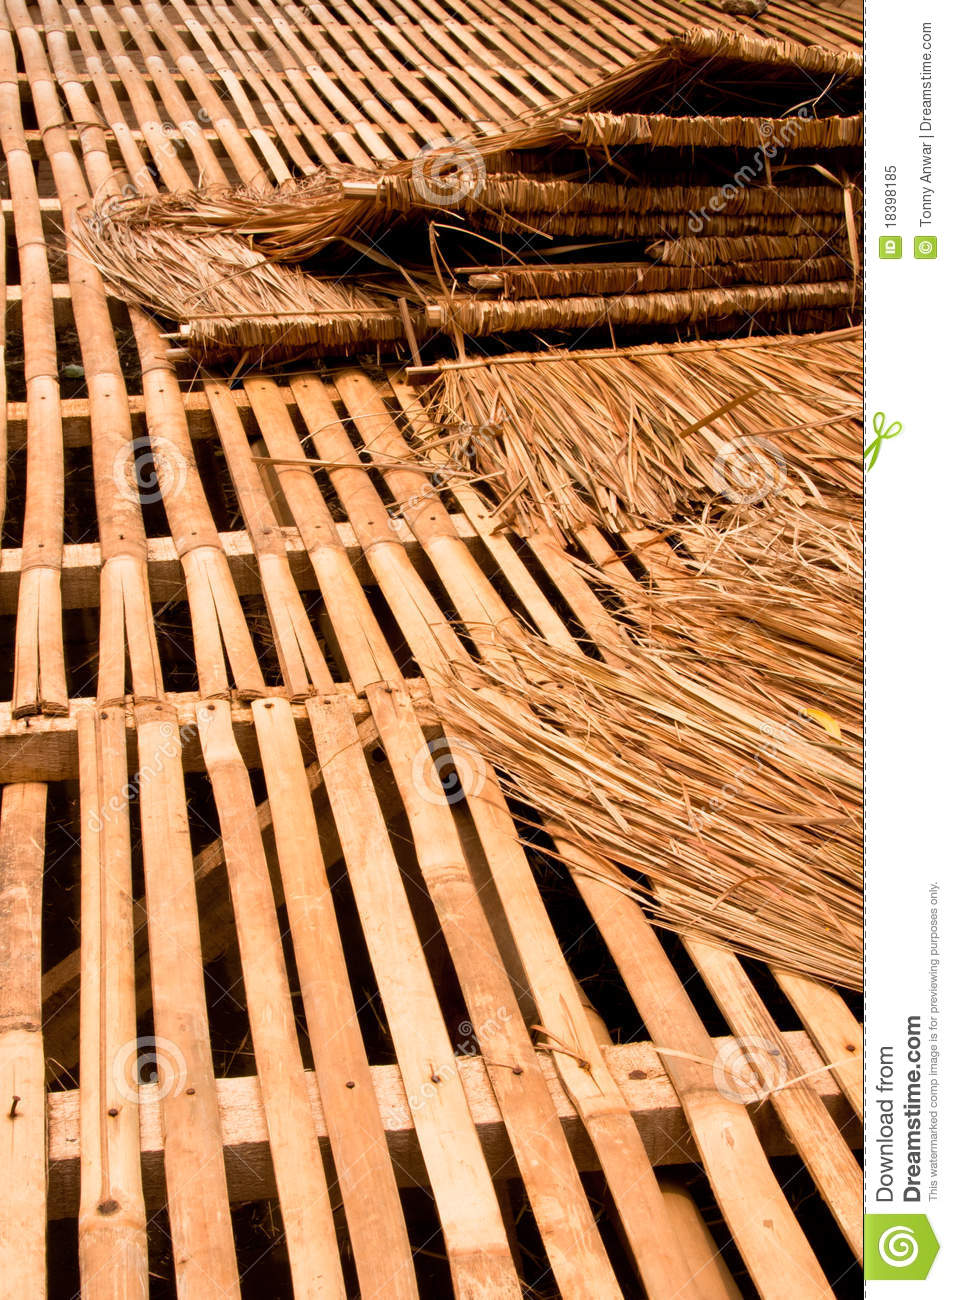 Straw Material Royalty Free Stock Photo Image 18398185